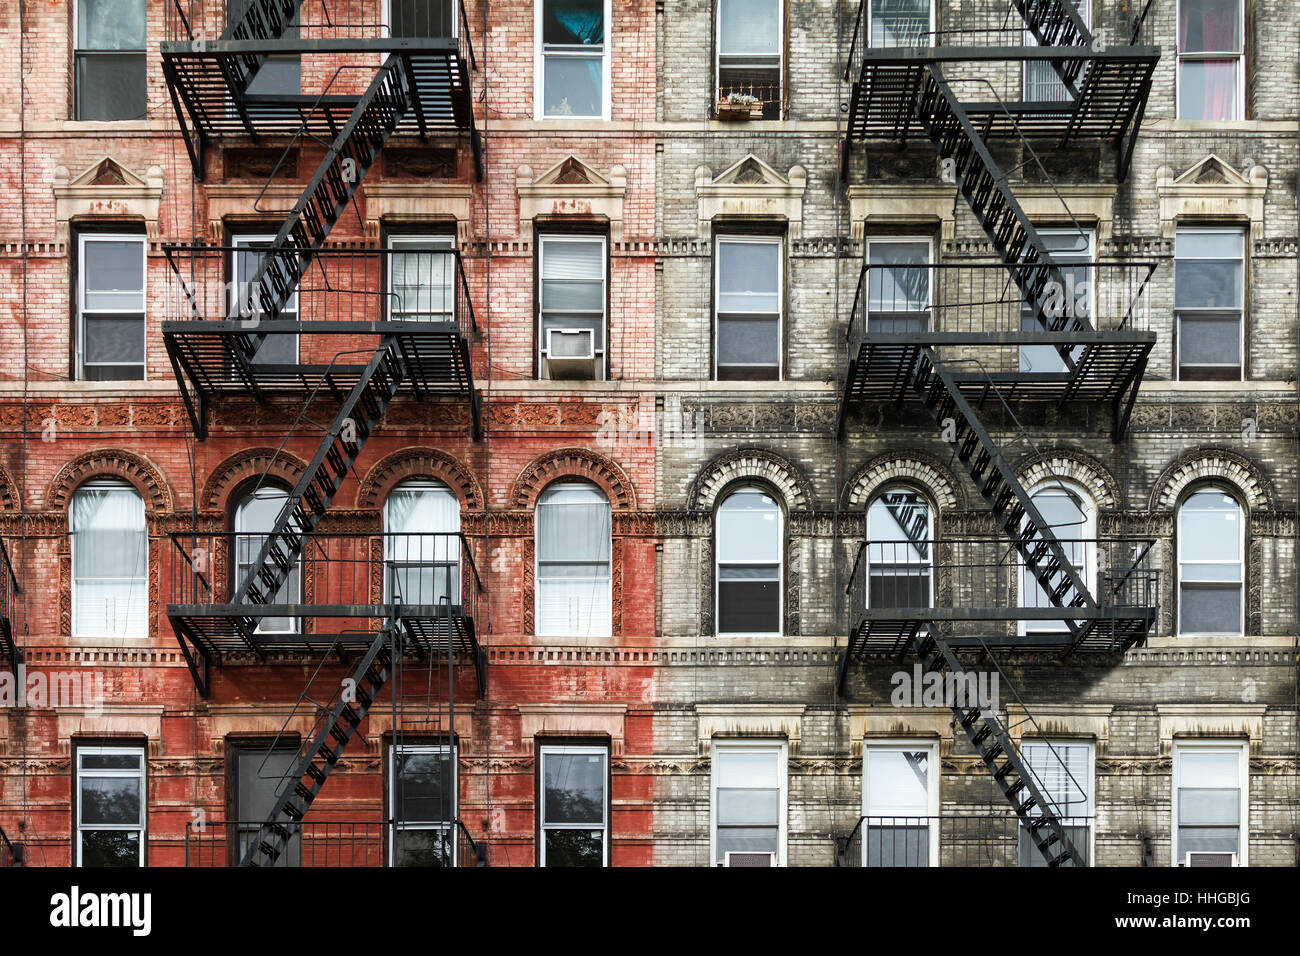 Old Brick Apartment Buildings In The East Village Of Manhattan New York Cityold Brick Apartment Buildings